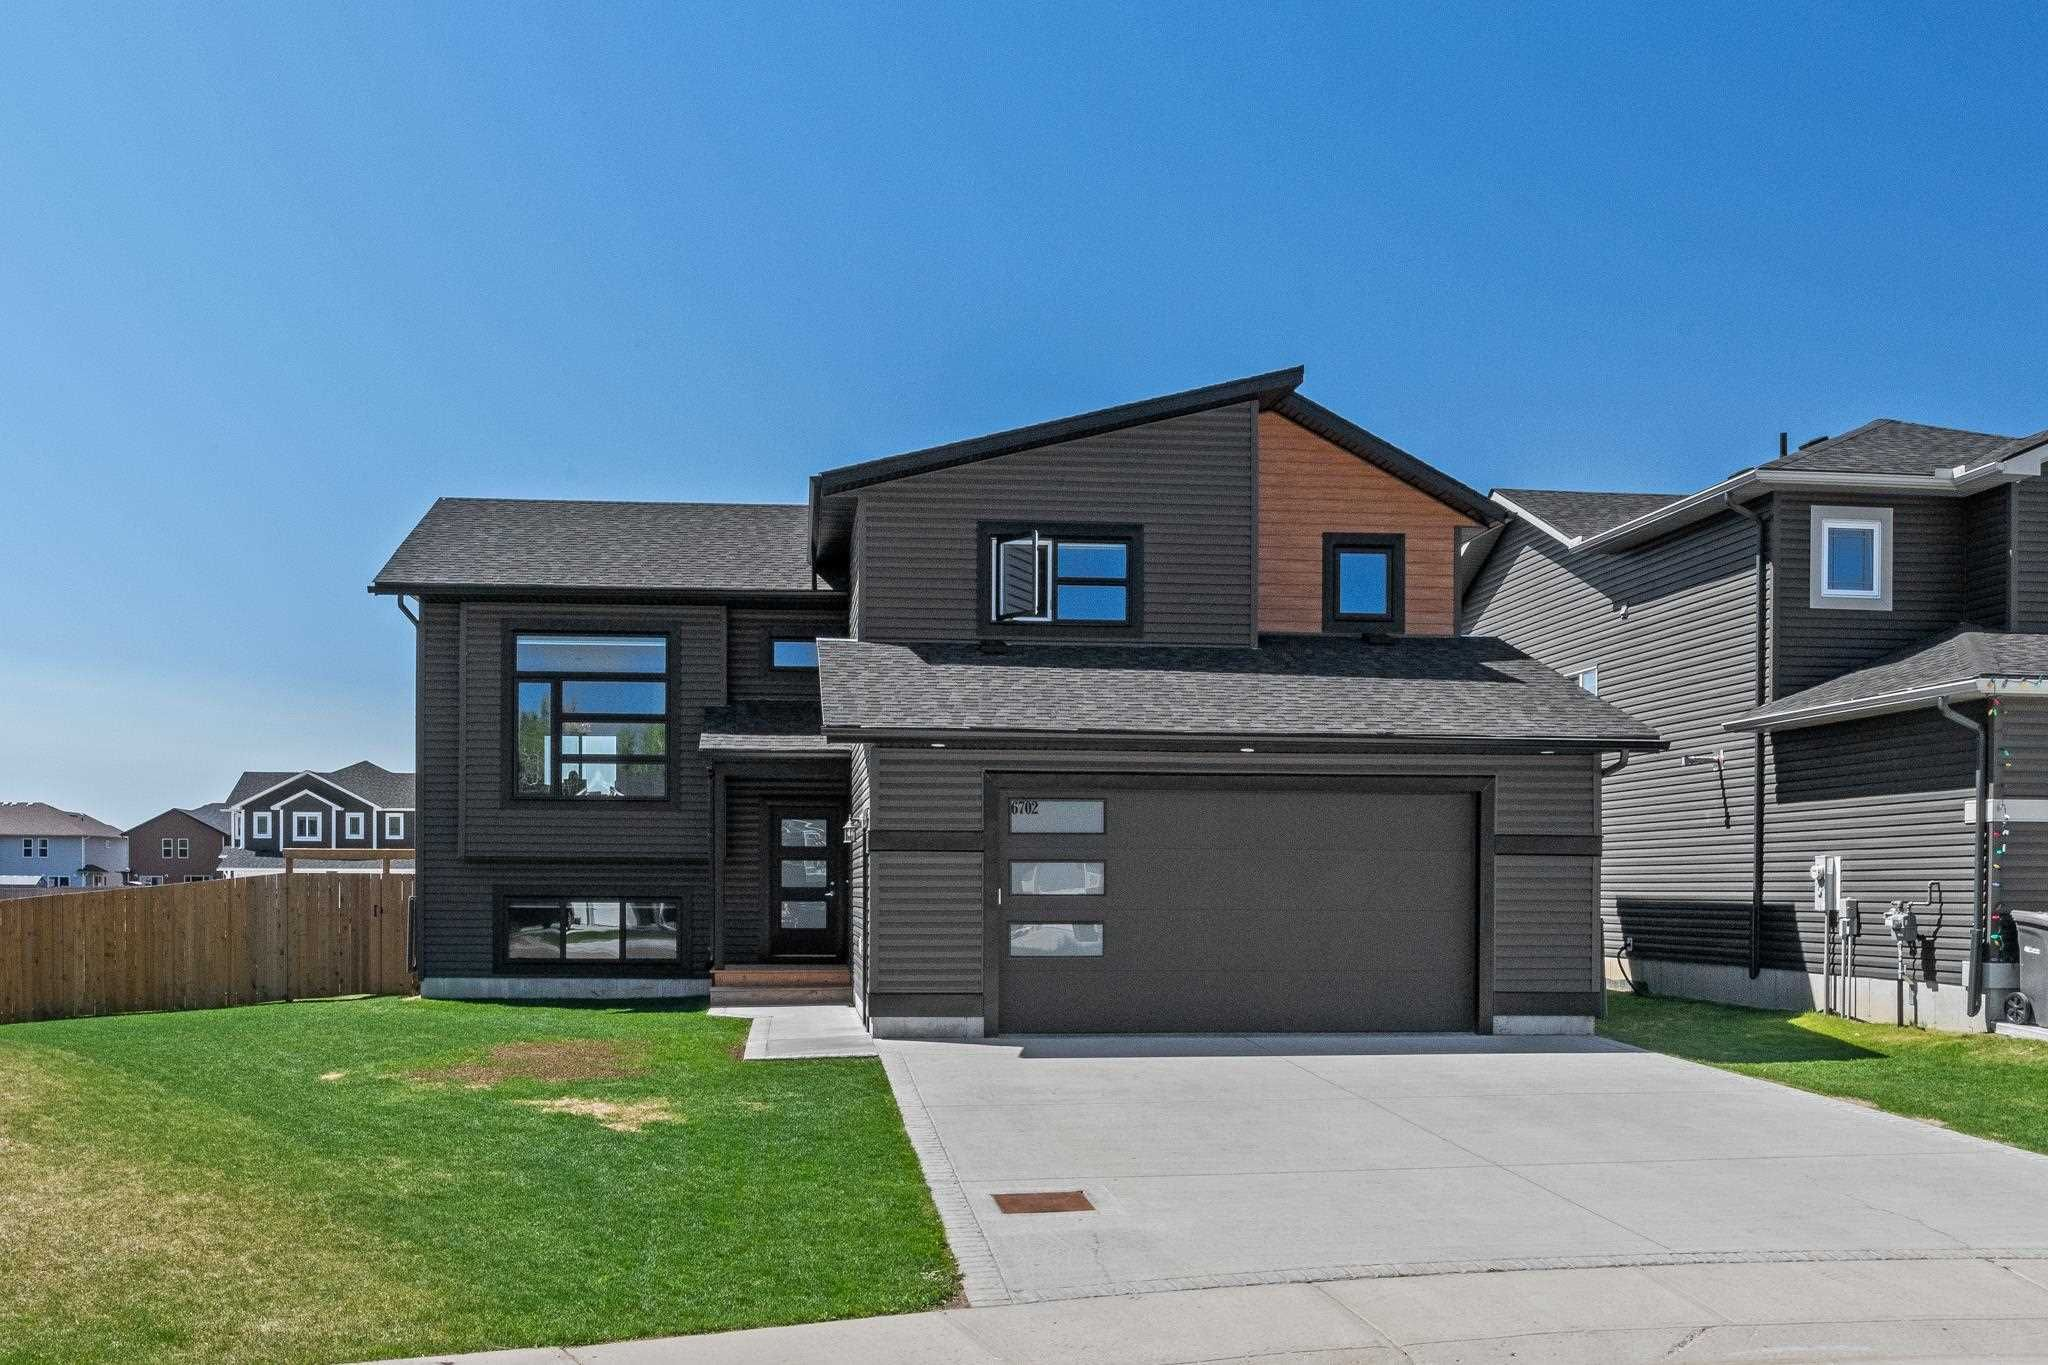 Main Photo: 6702 Museum Way: Cold Lake House for sale : MLS®# E4245618